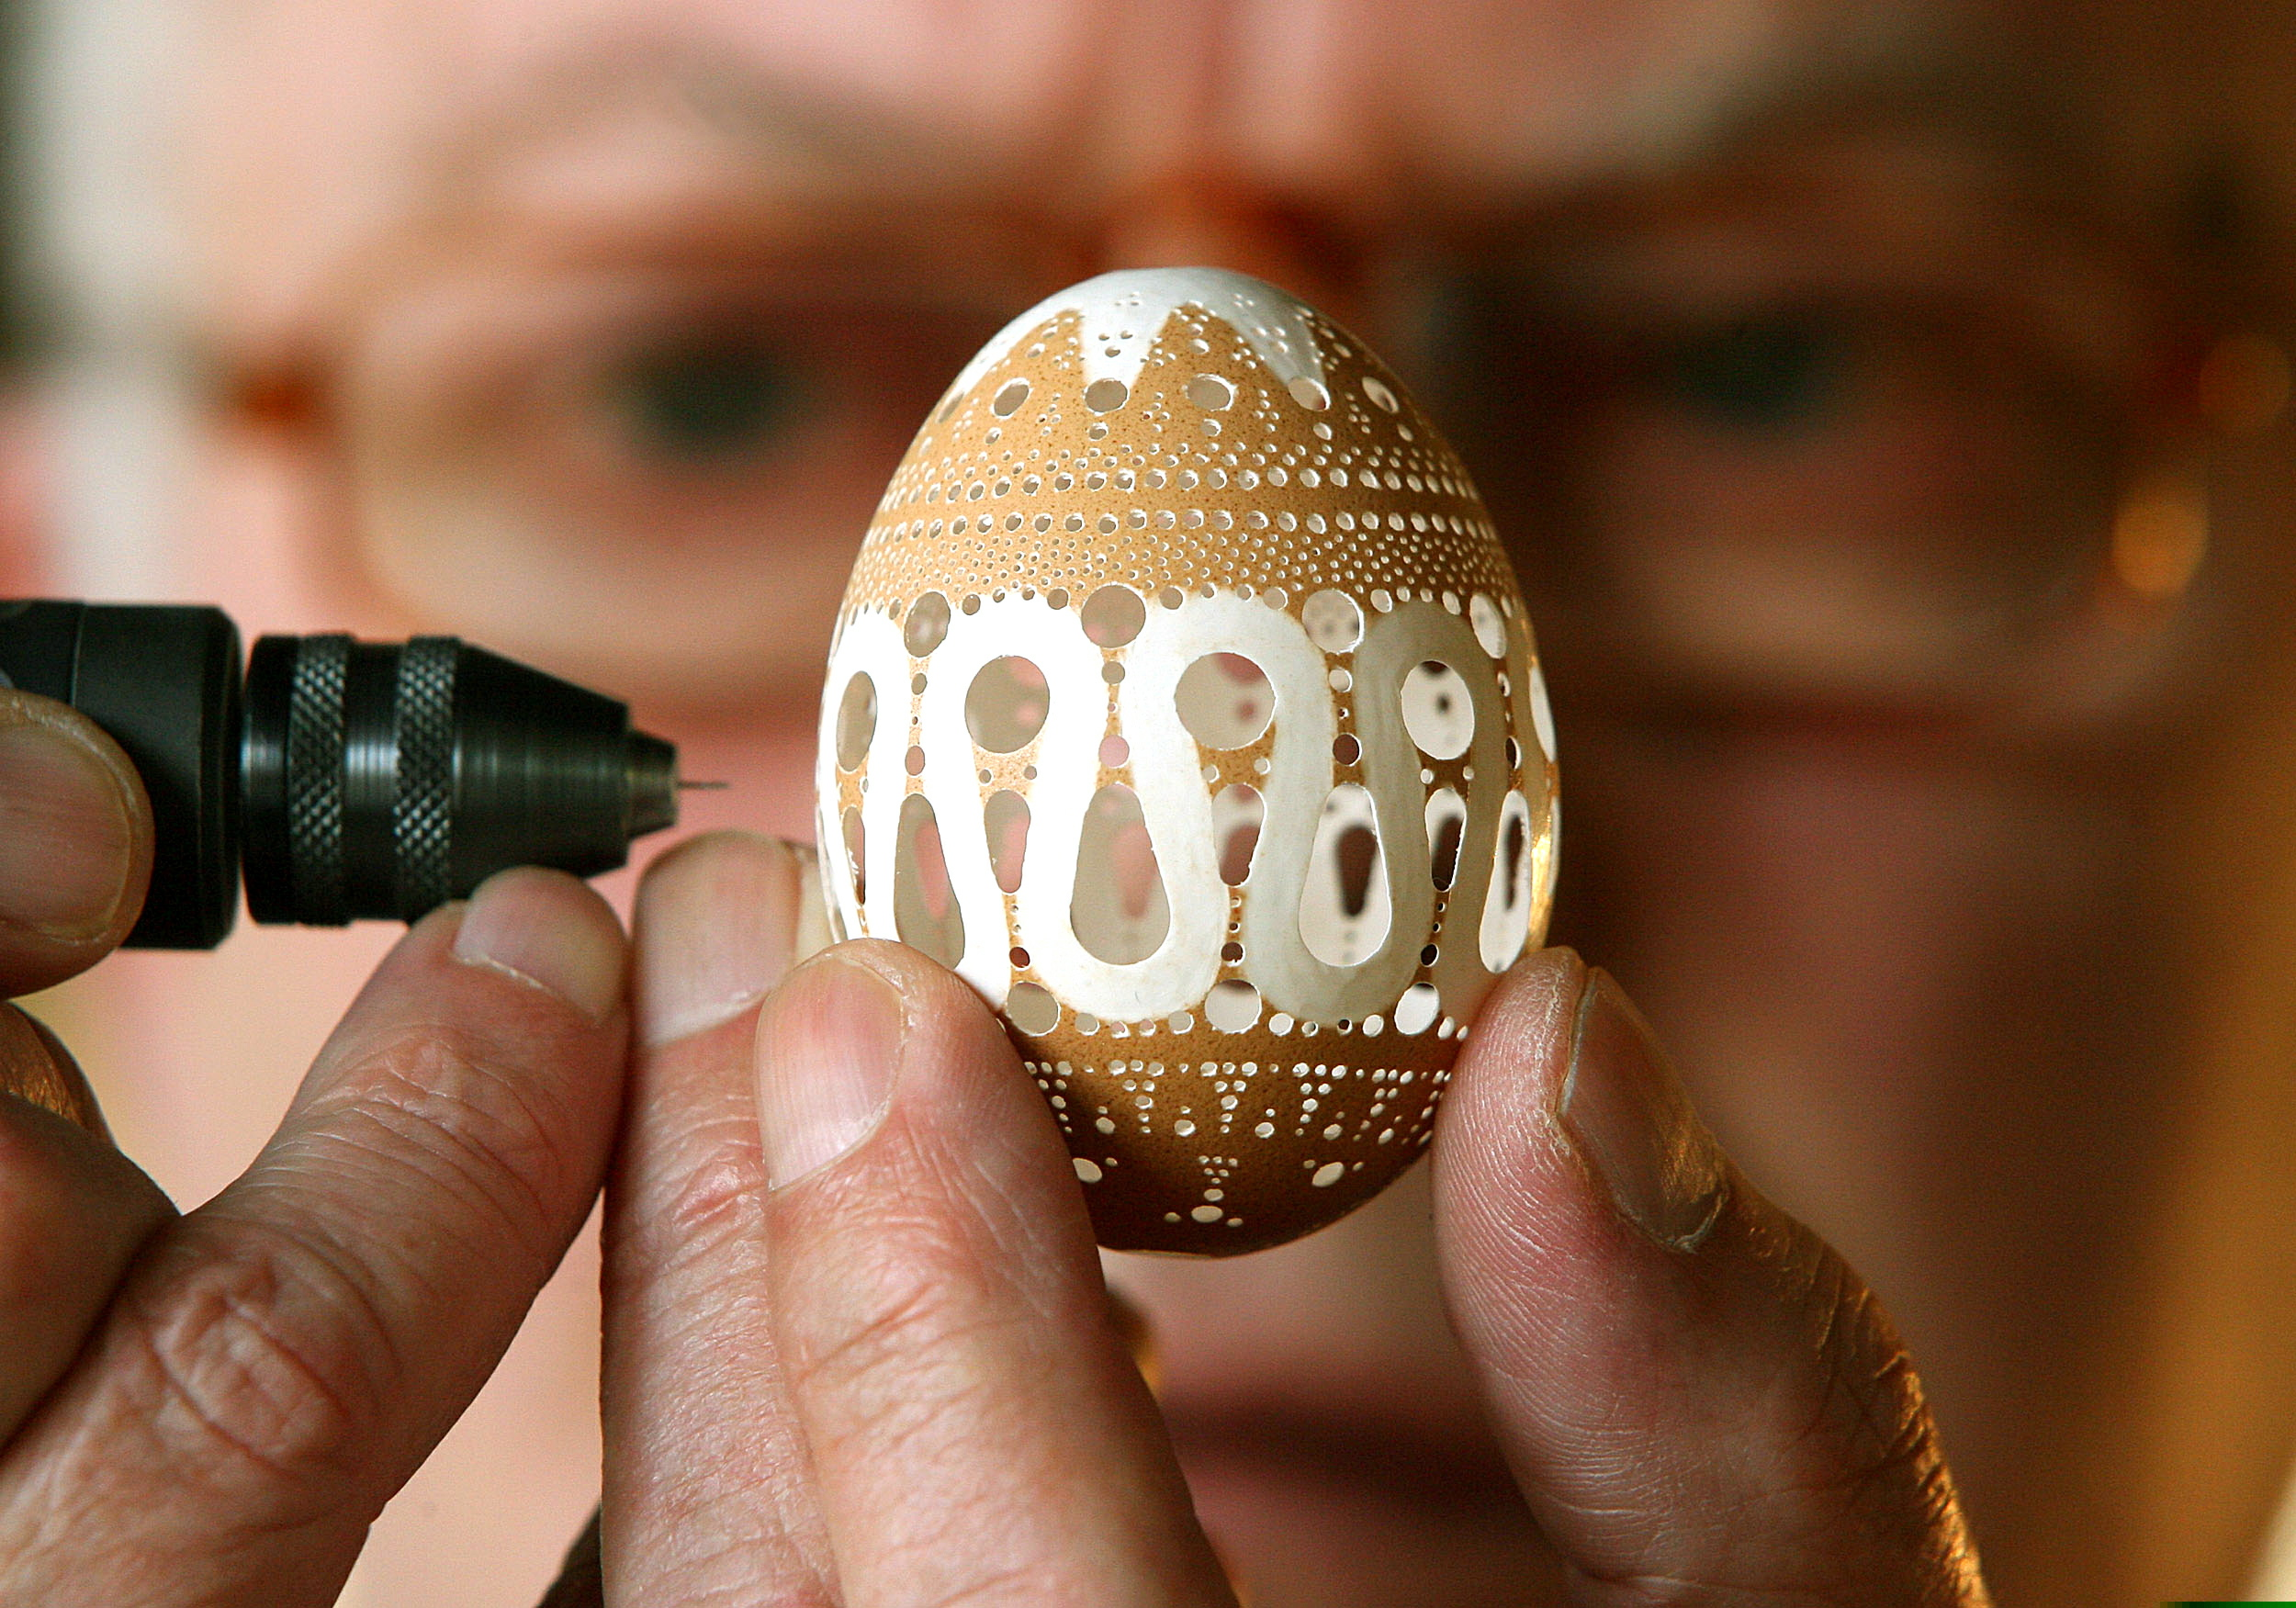 creative egg decorations ideas by Grom